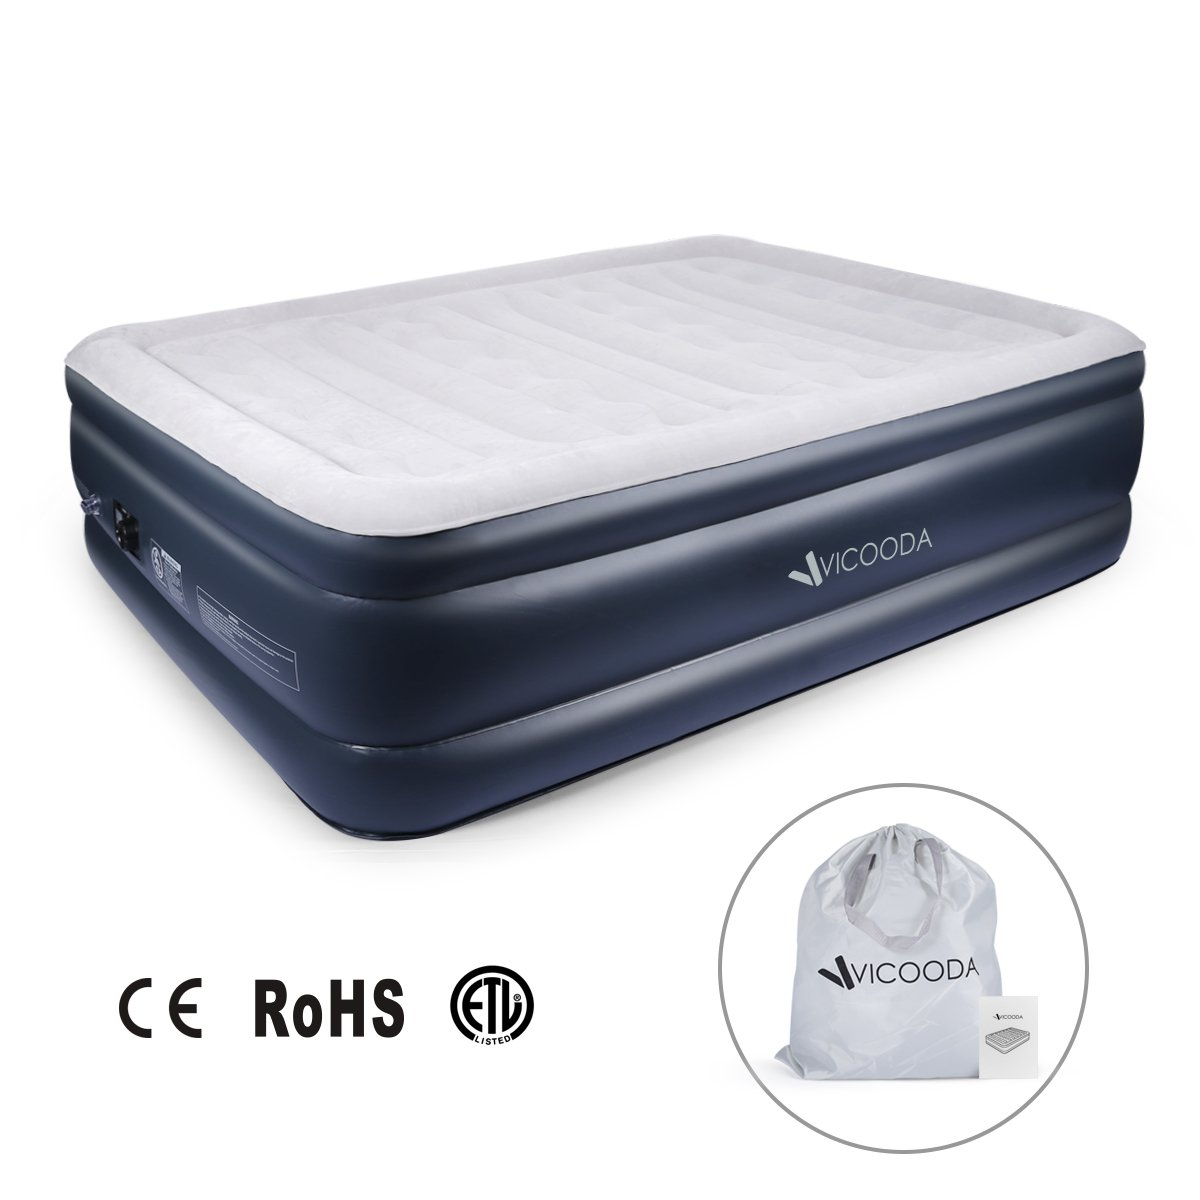 VICOODA Air Mattress, Blow Up Mattress Queen with Built-in Electric Pump [Upgraded & Easy Setup], 22 inch in Height, 650 lb in Capacity, PVC Materials, with a Storage Bag